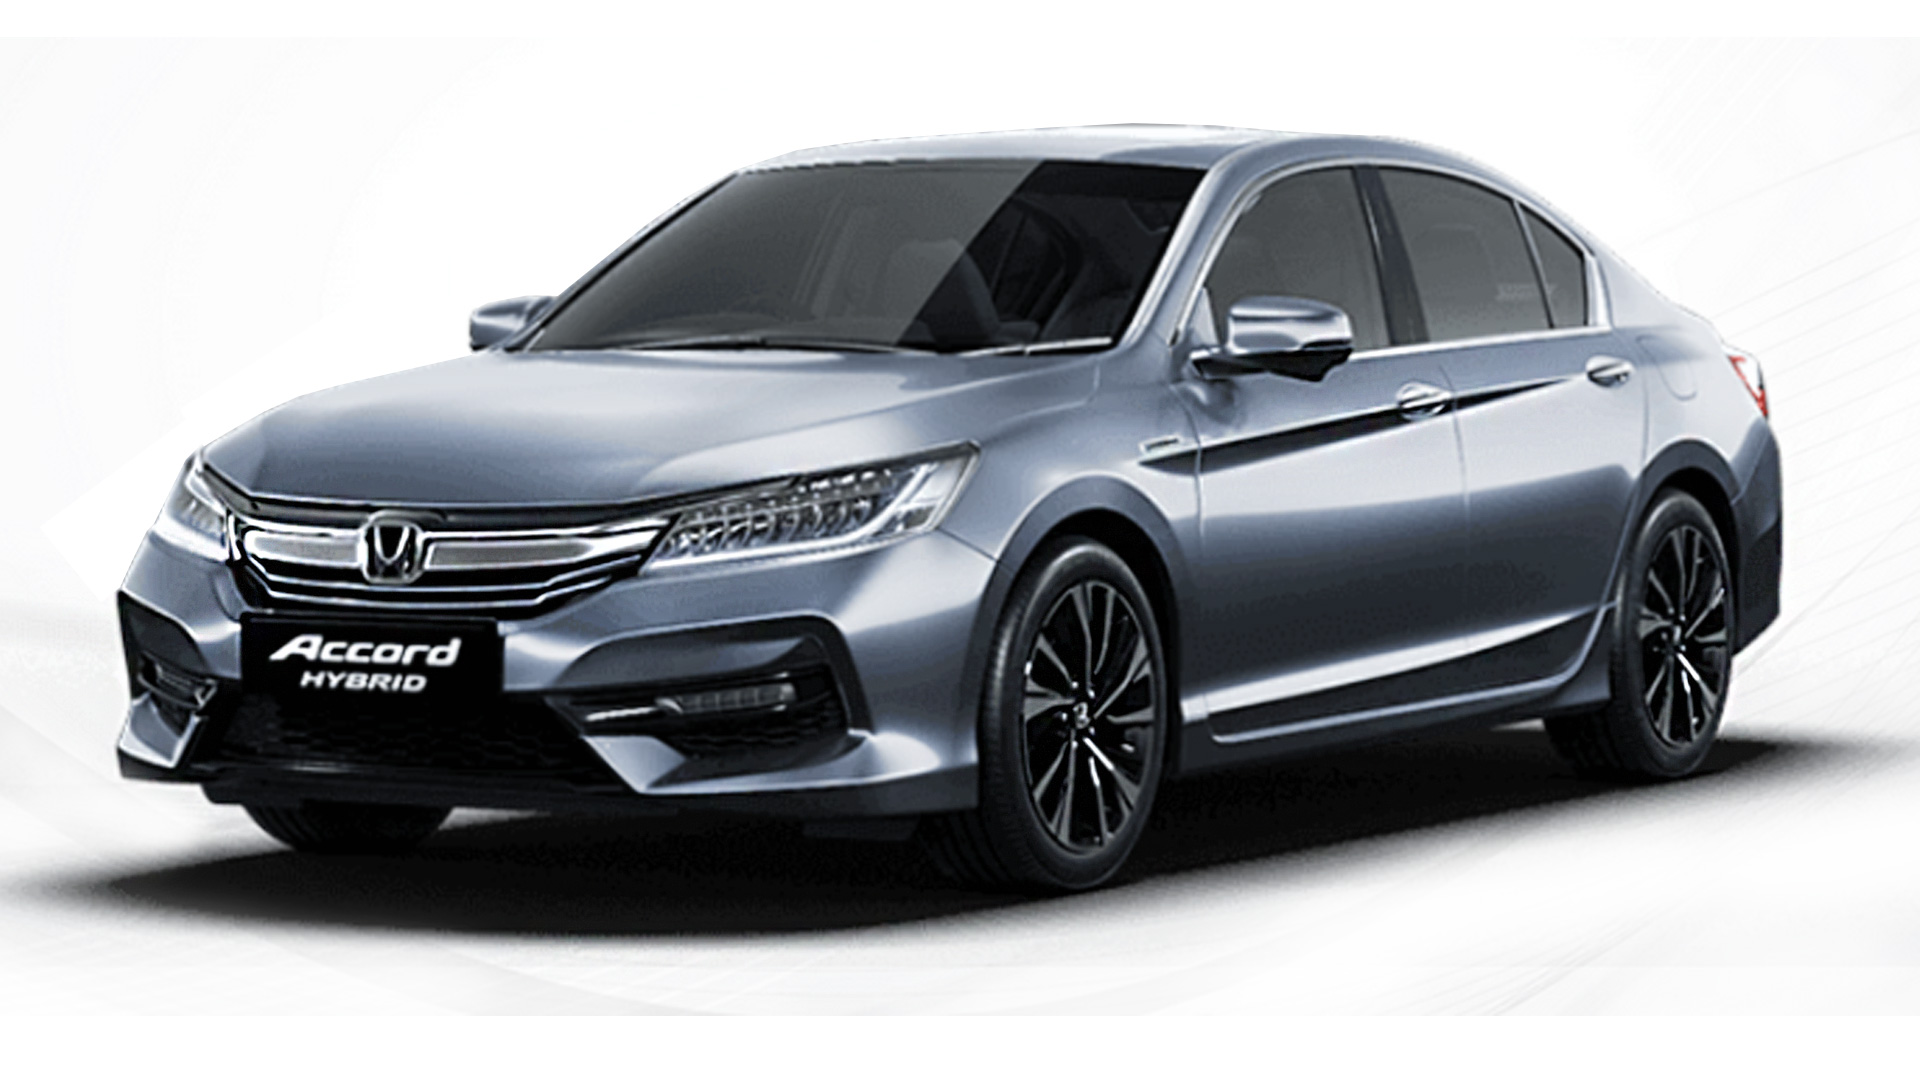 honda accord hybrid 2016 price mileage reviews. Black Bedroom Furniture Sets. Home Design Ideas